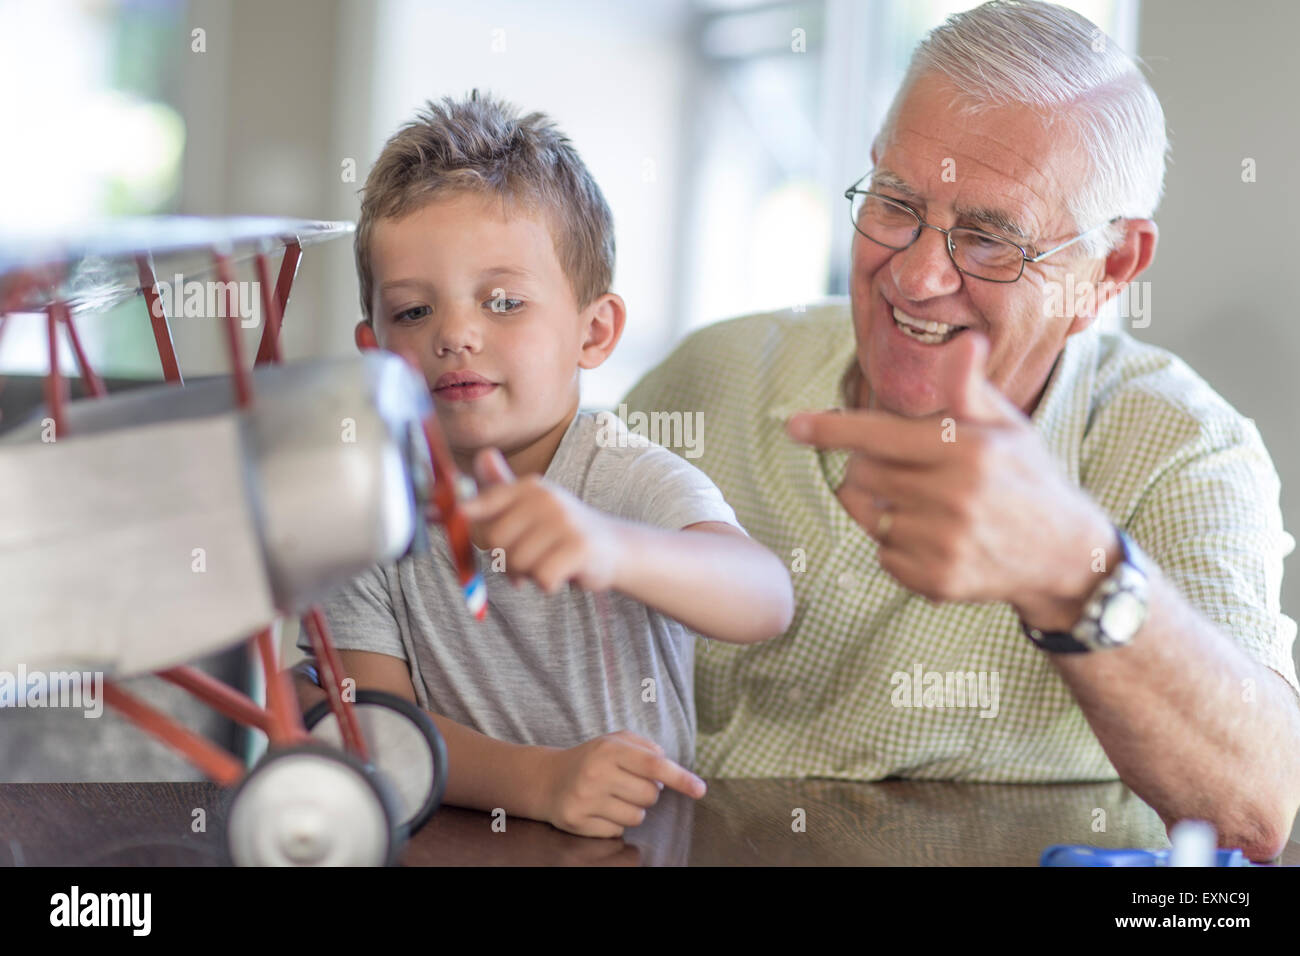 Grandfather and grandson building up a model airplane - Stock Image